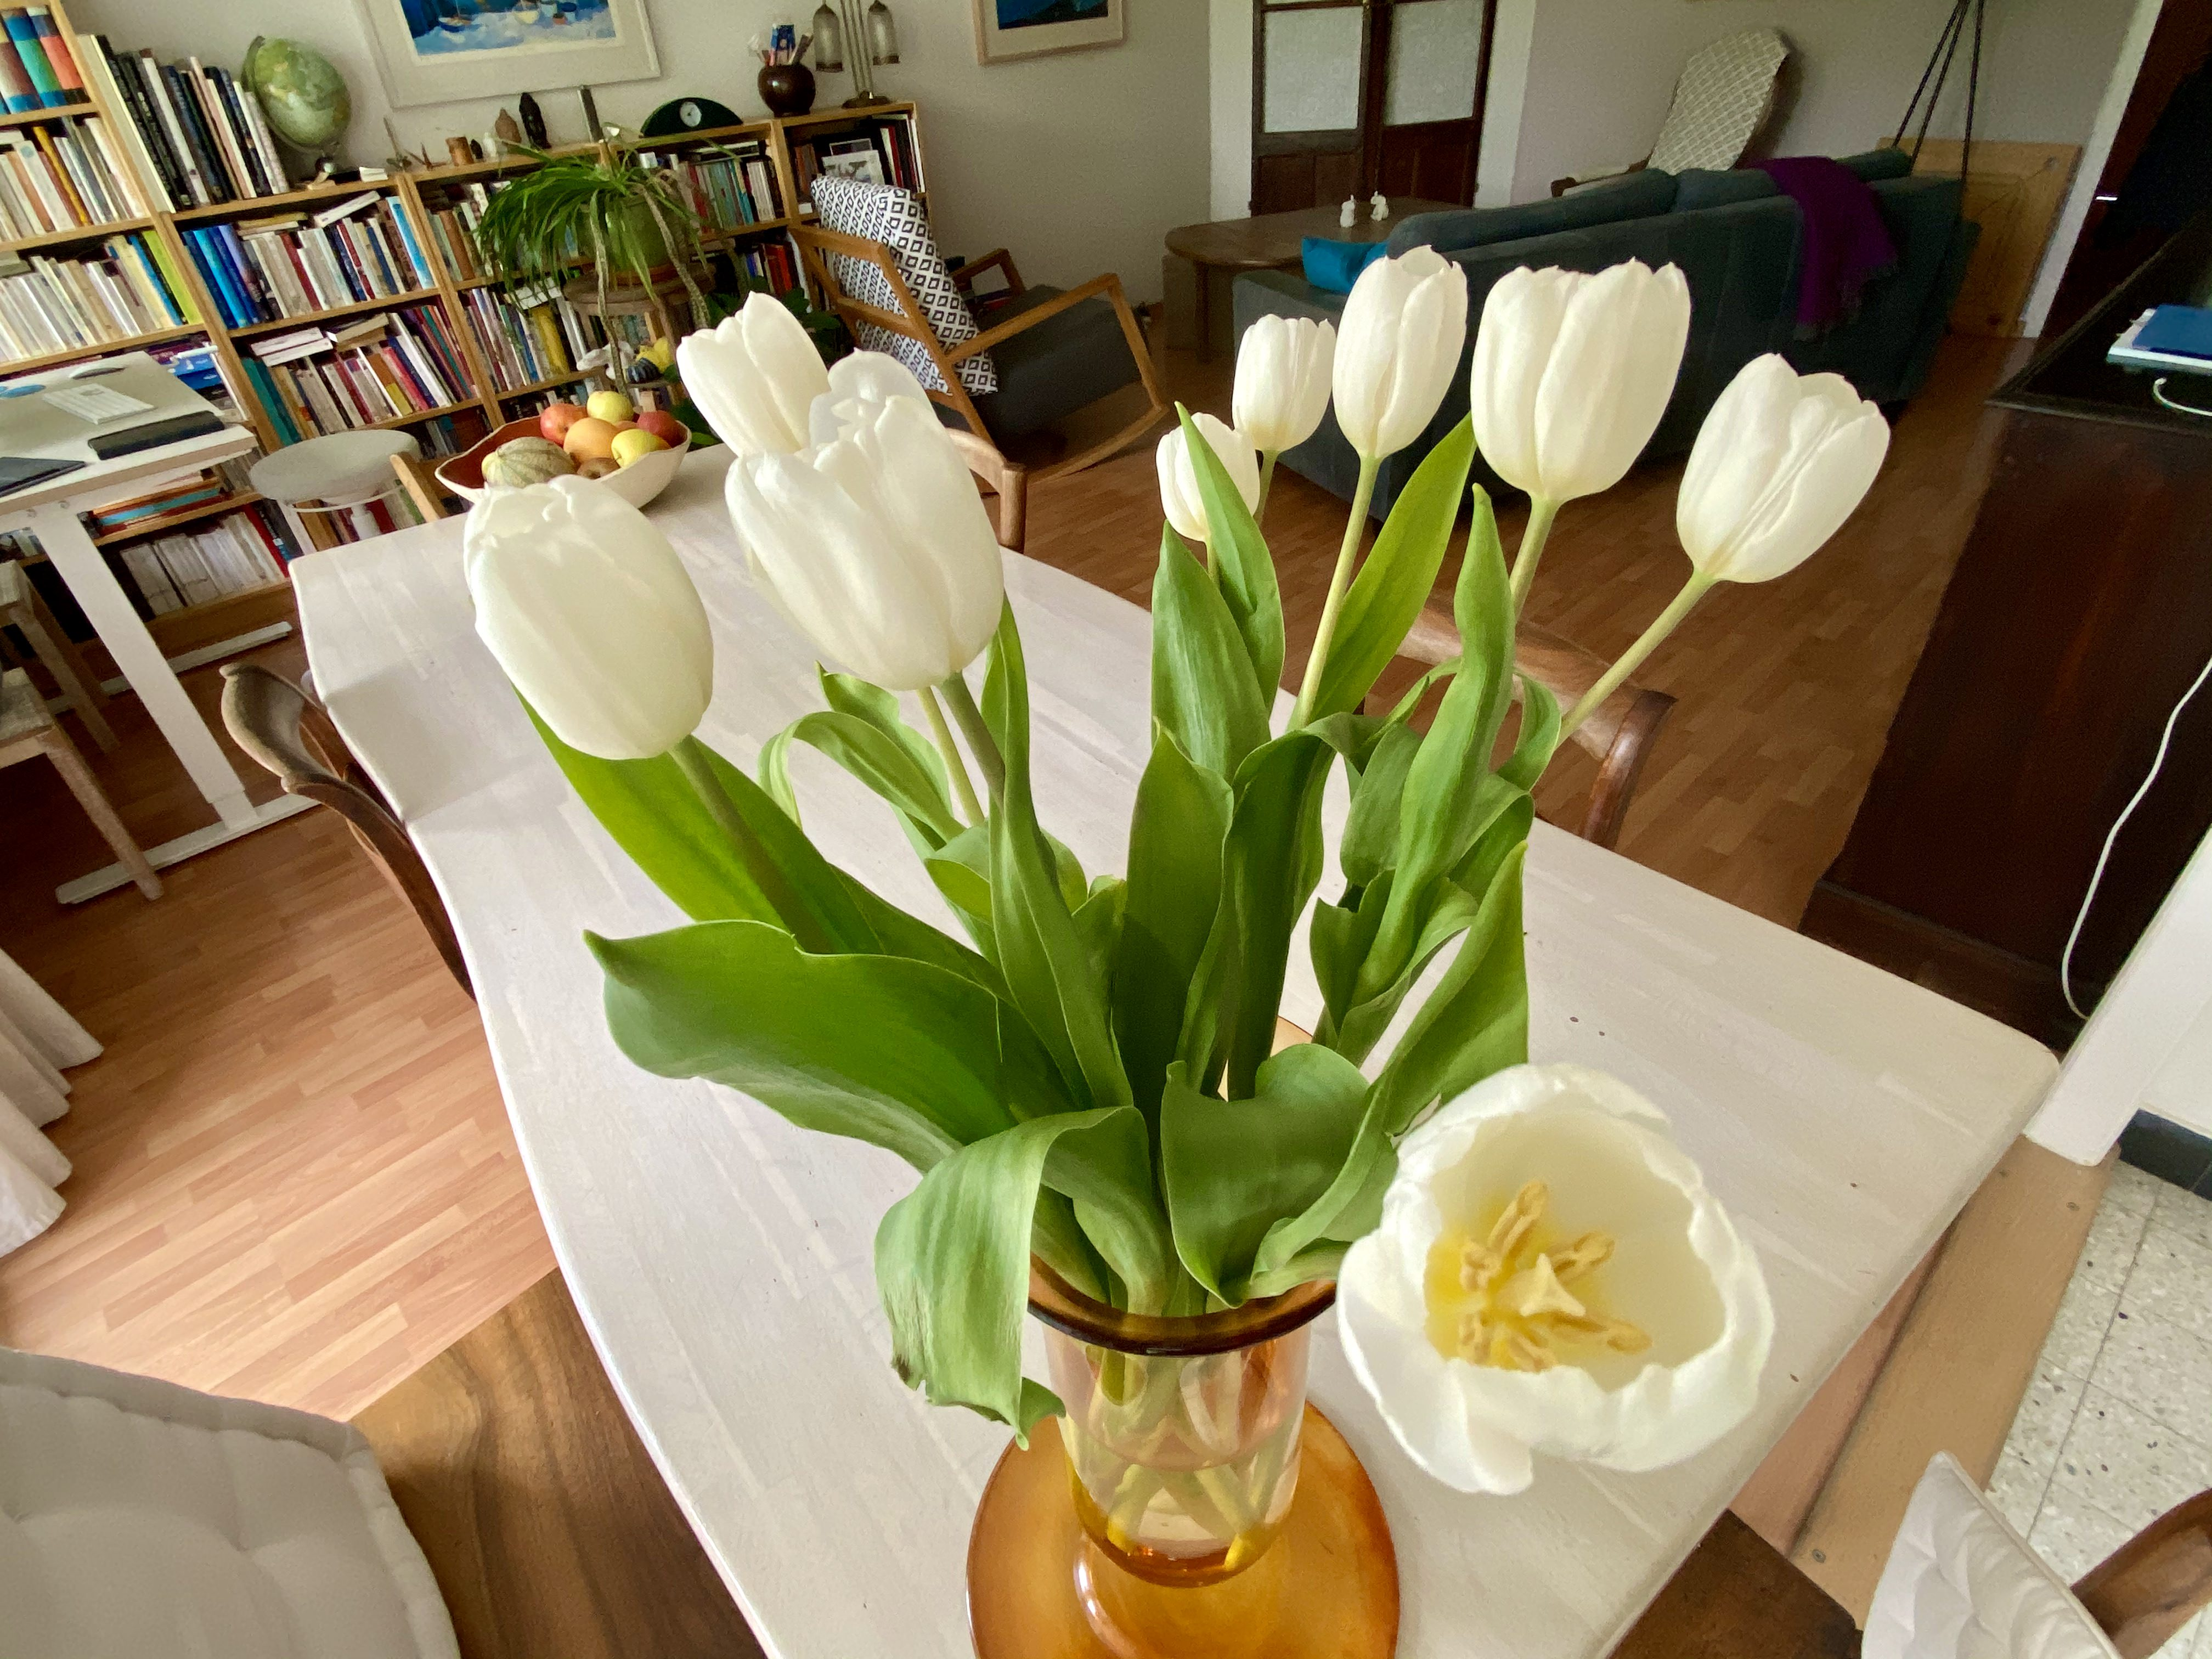 White tulips in a vase on our table